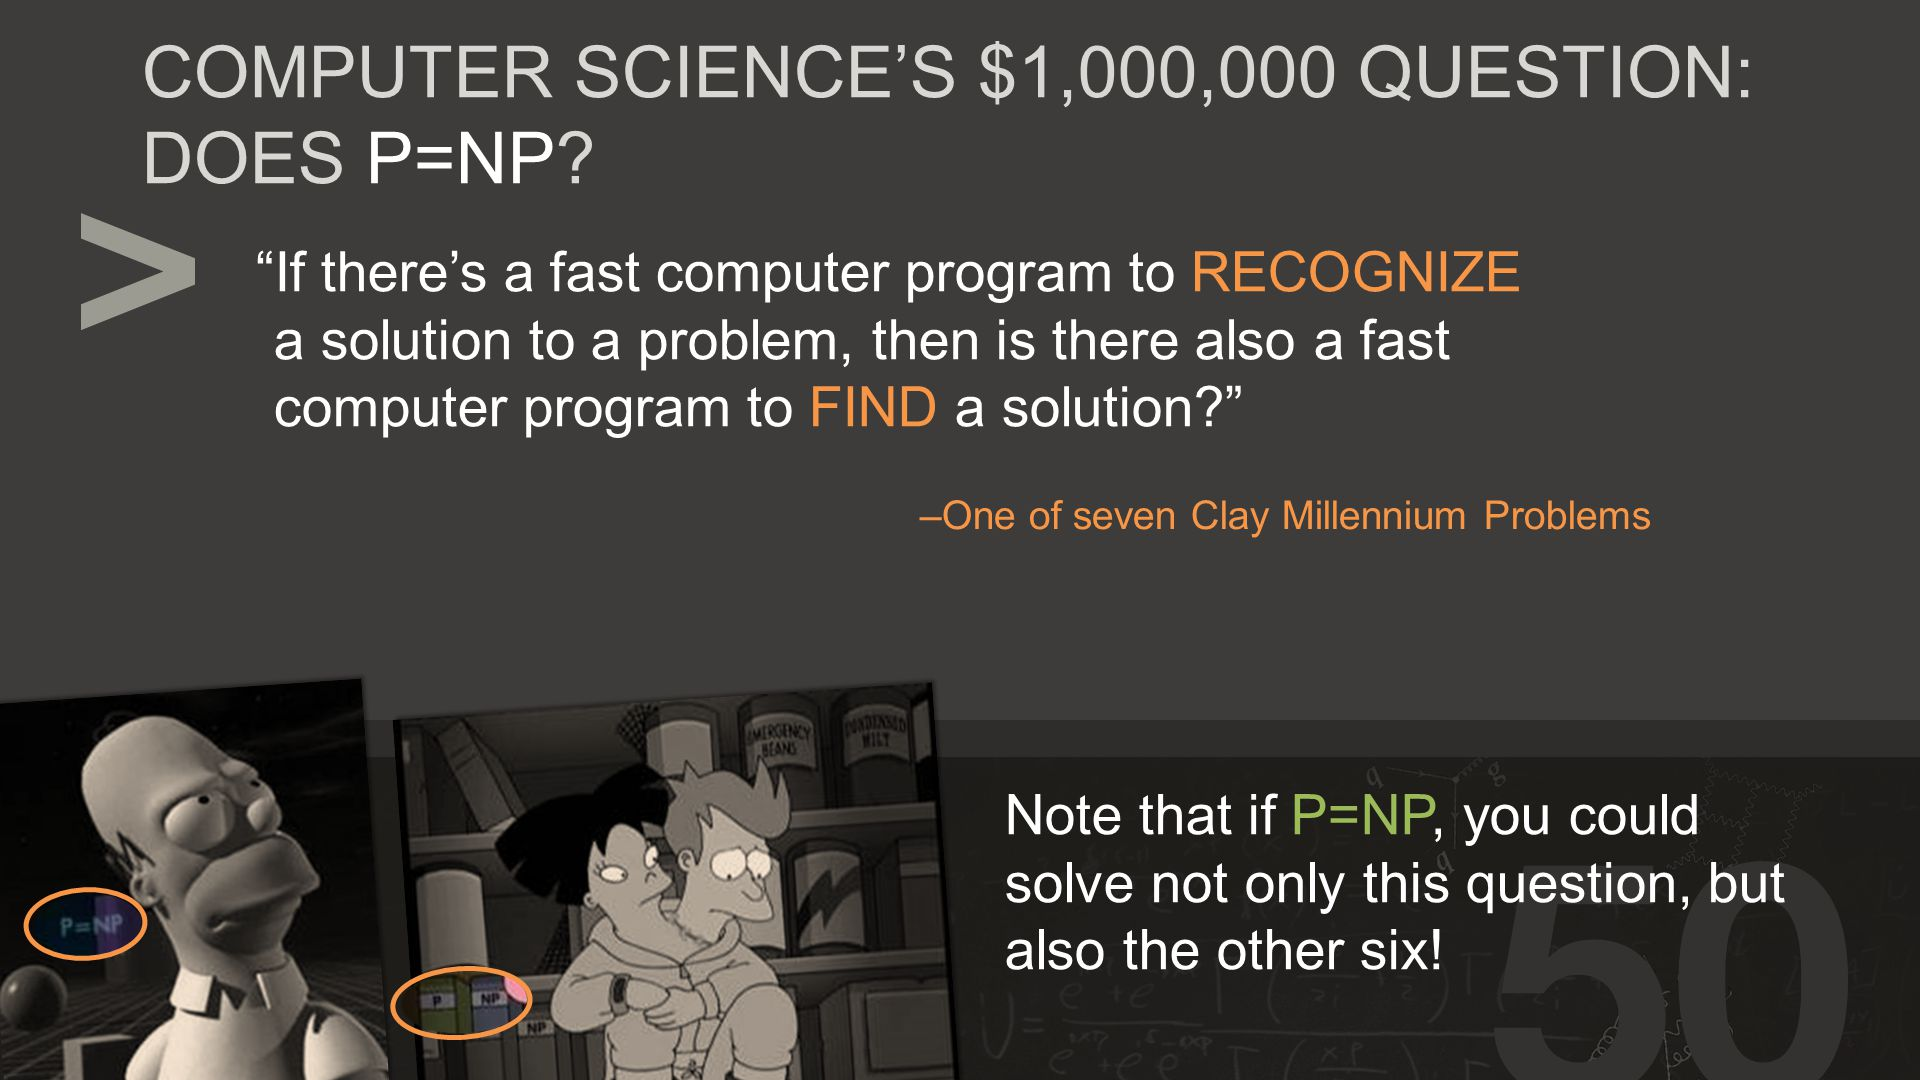 If there's a fast computer program to RECOGNIZE a solution to a problem, then is there also a fast computer program to FIND a solution –One of seven Clay Millennium Problems COMPUTER SCIENCE'S $1,000,000 QUESTION: DOES P=NP.